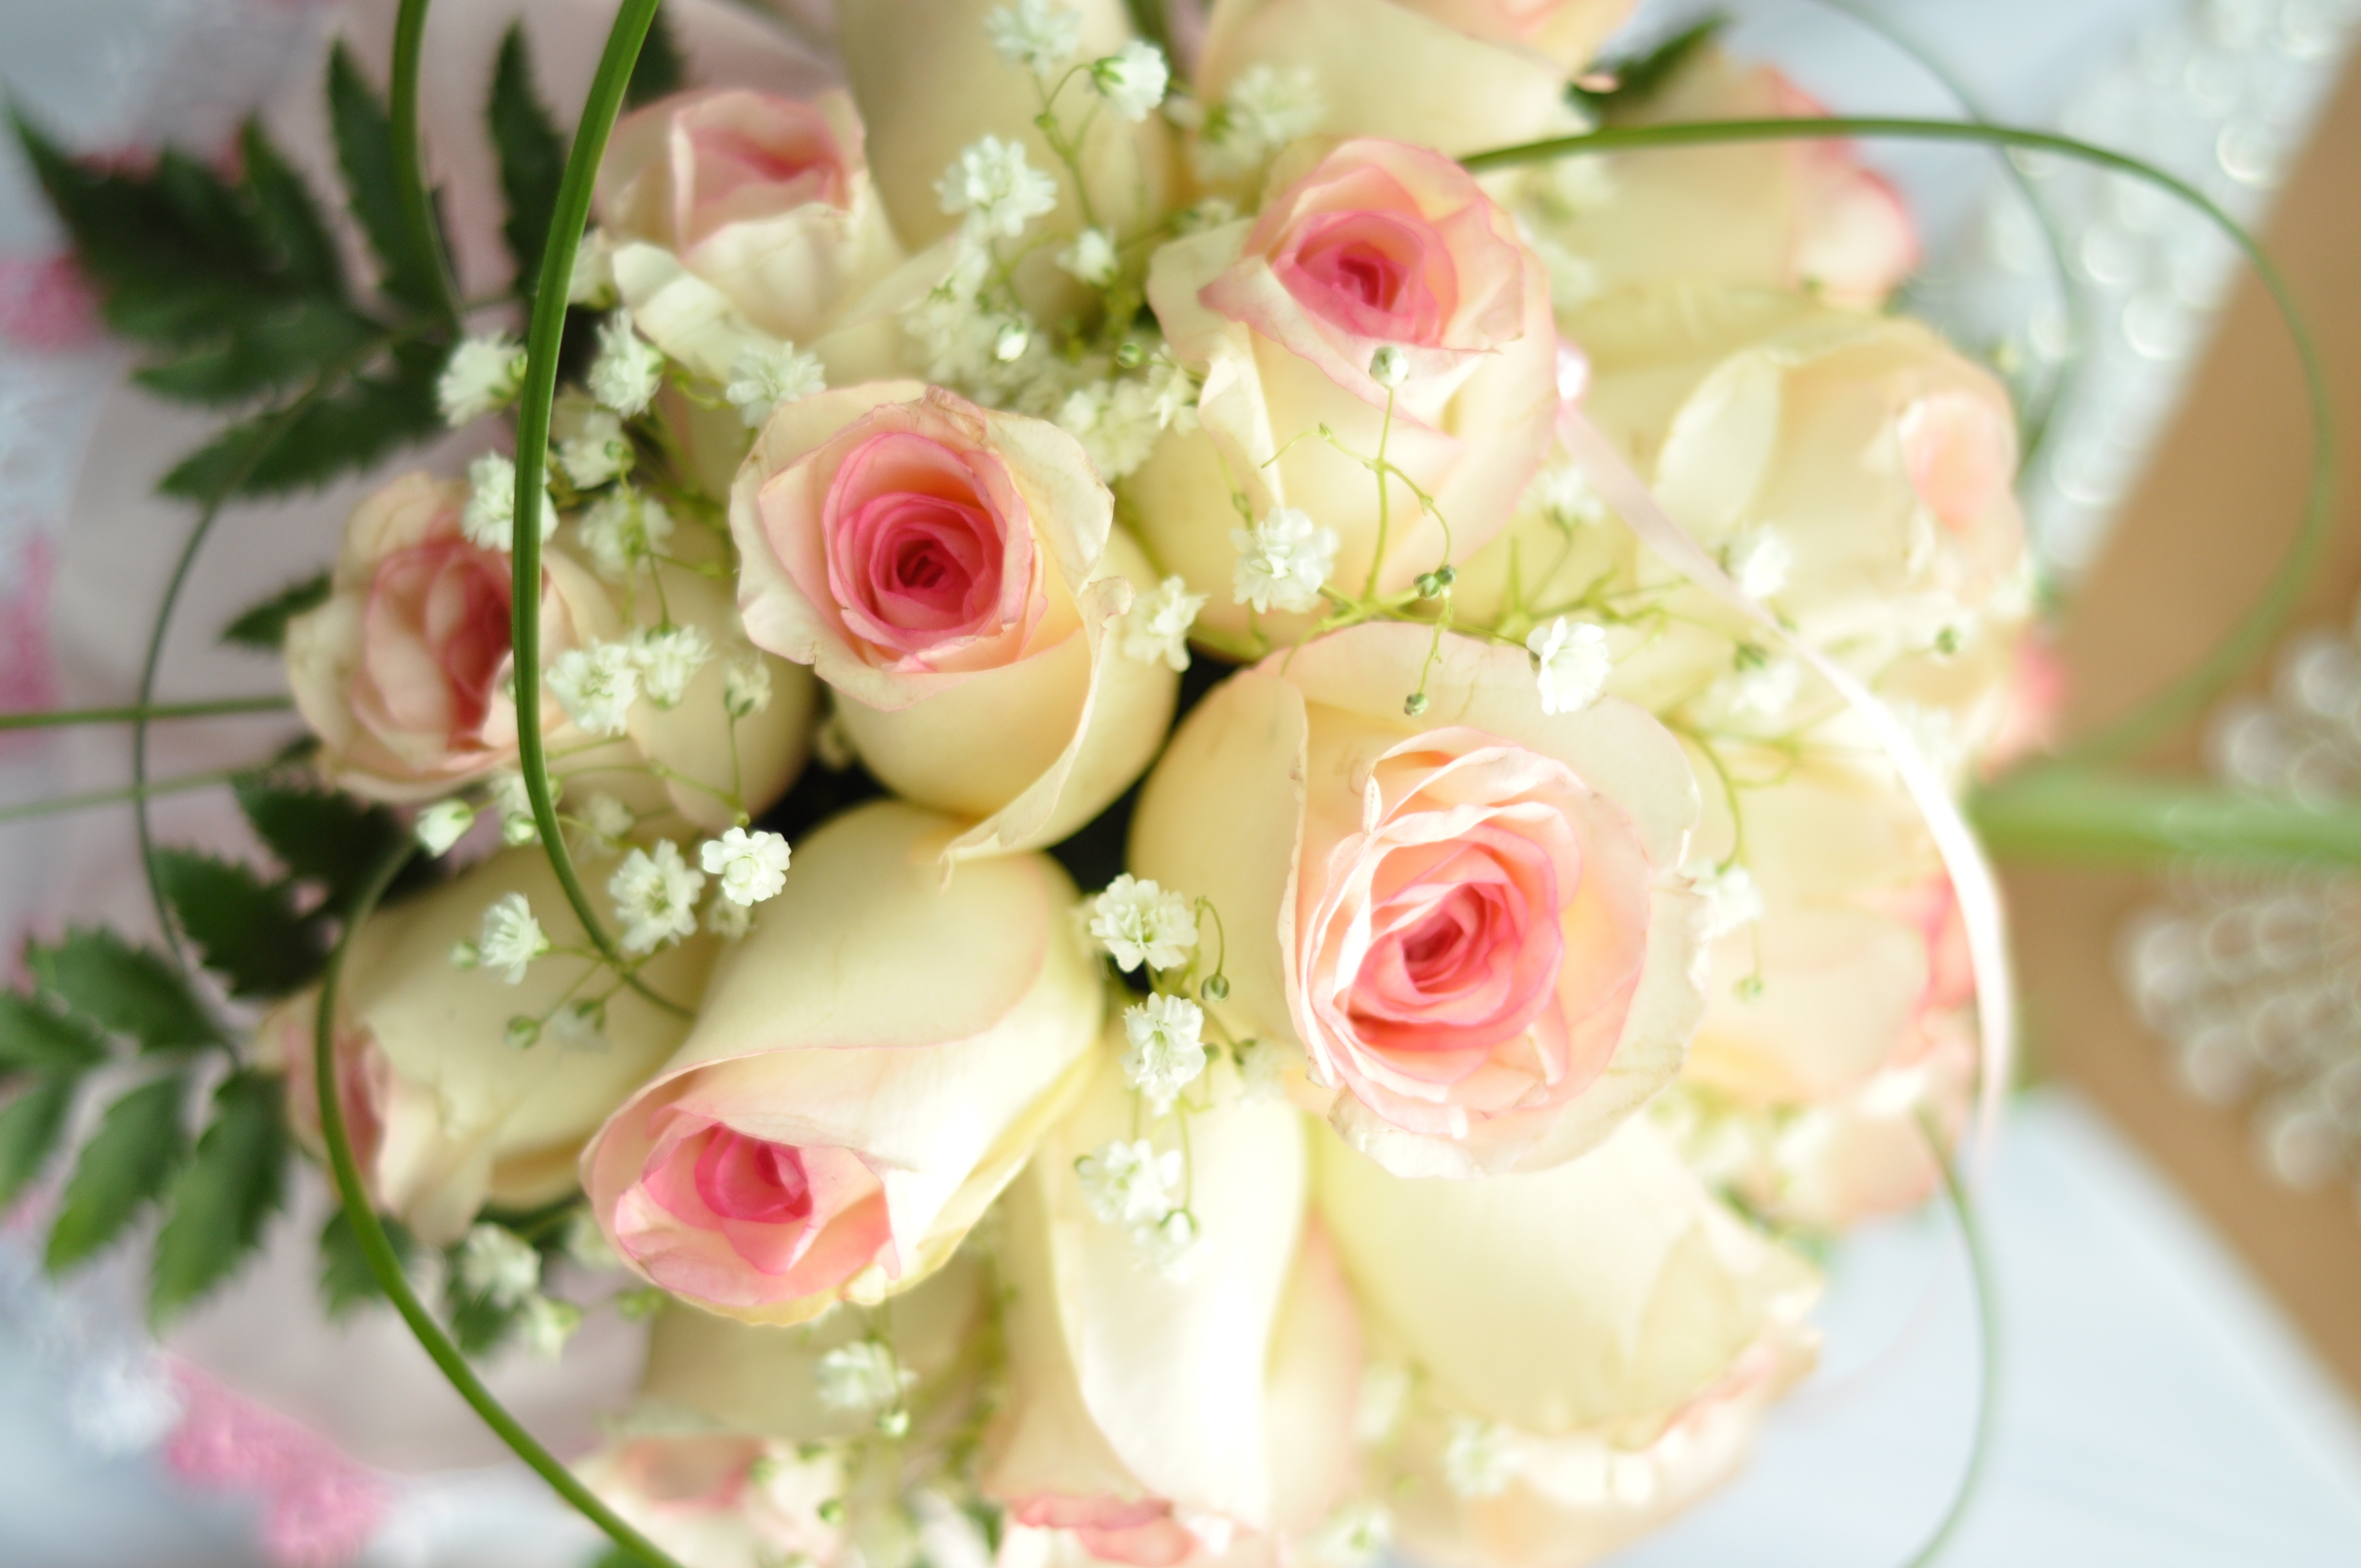 76861 download wallpaper Flowers, Grass, Roses, Bouquet, Tenderness screensavers and pictures for free